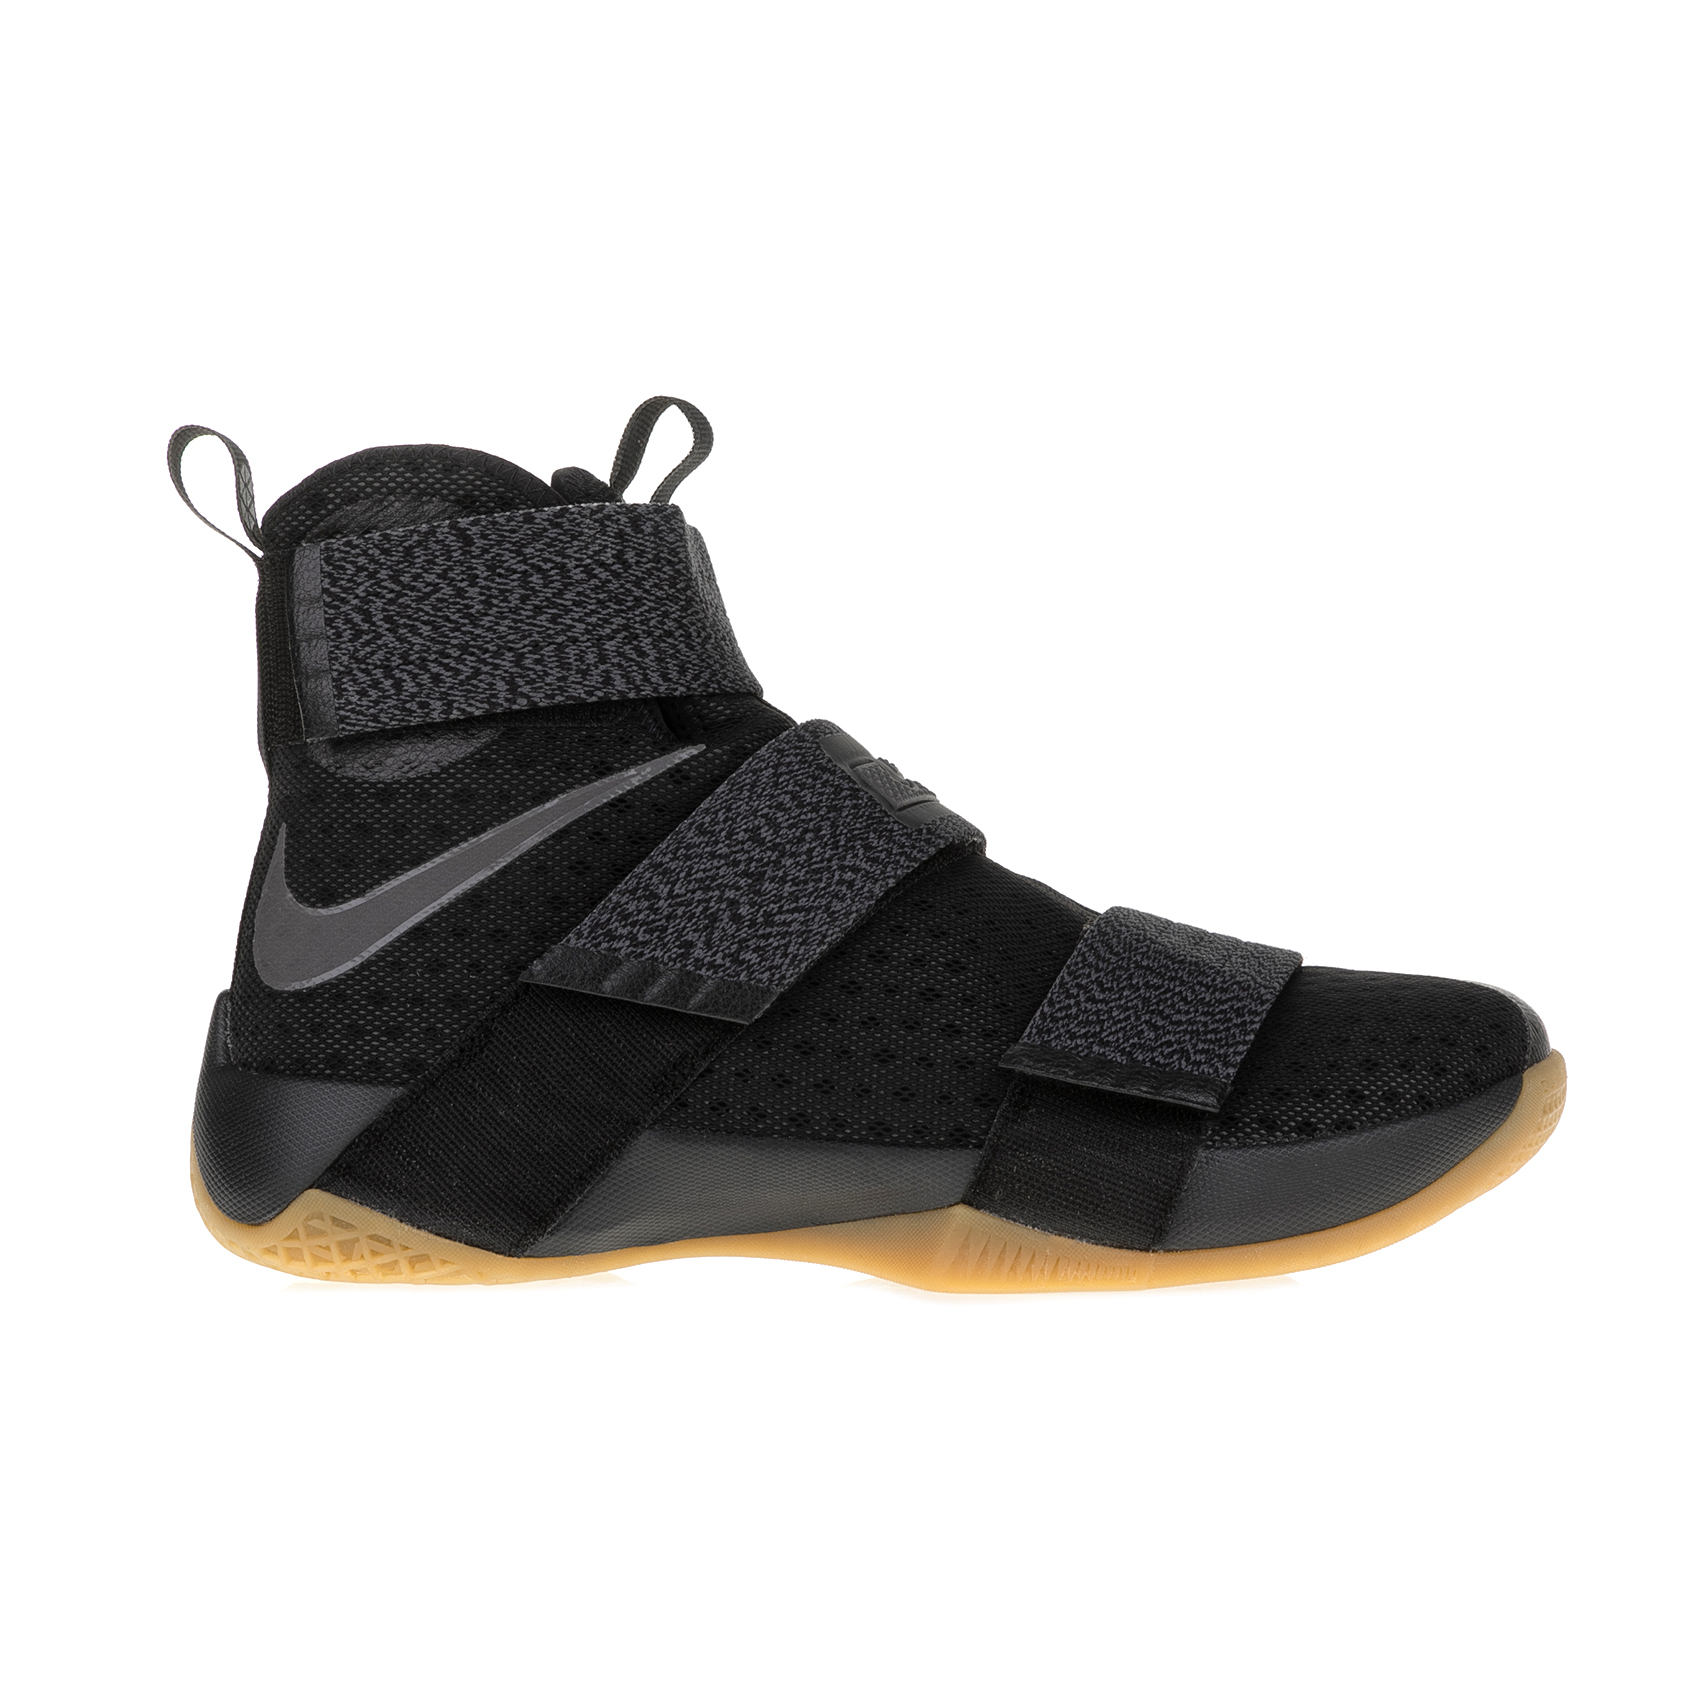 NIKE – Ανδρικά παπούτσια μπάσκετ Nike LEBRON SOLDIER 10 SFG μαύρα